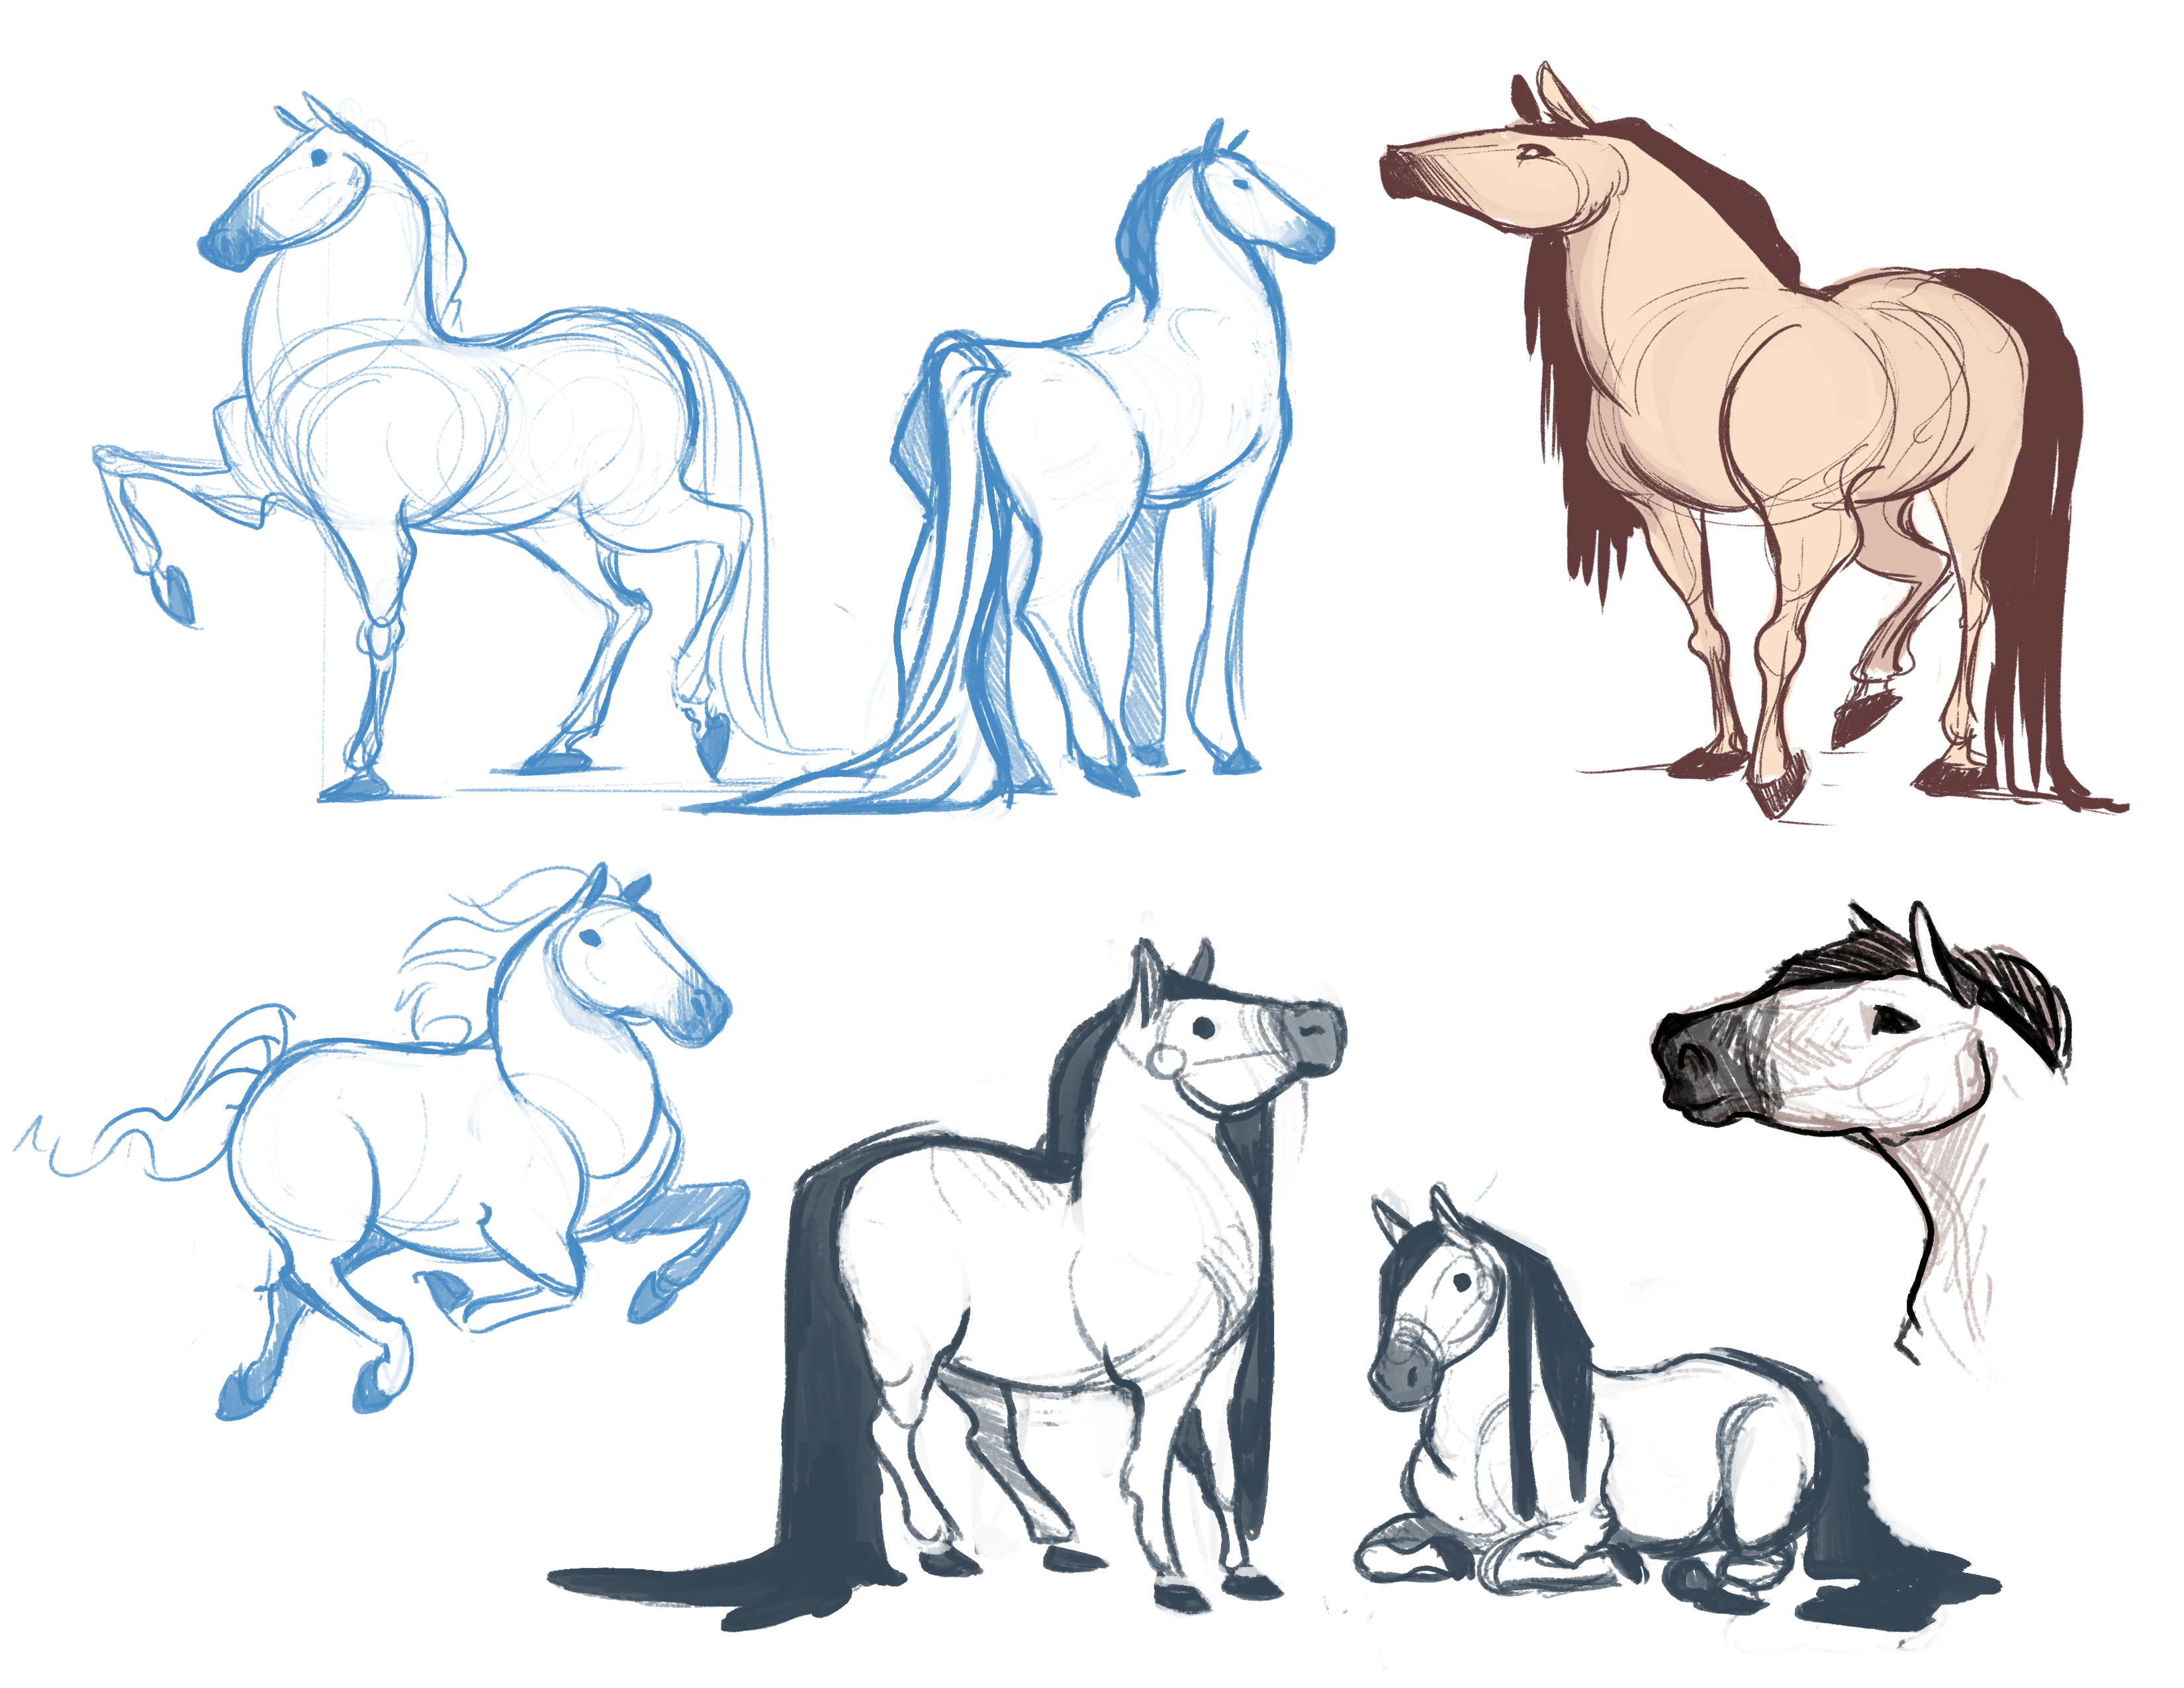 Horton_horse sketches 2